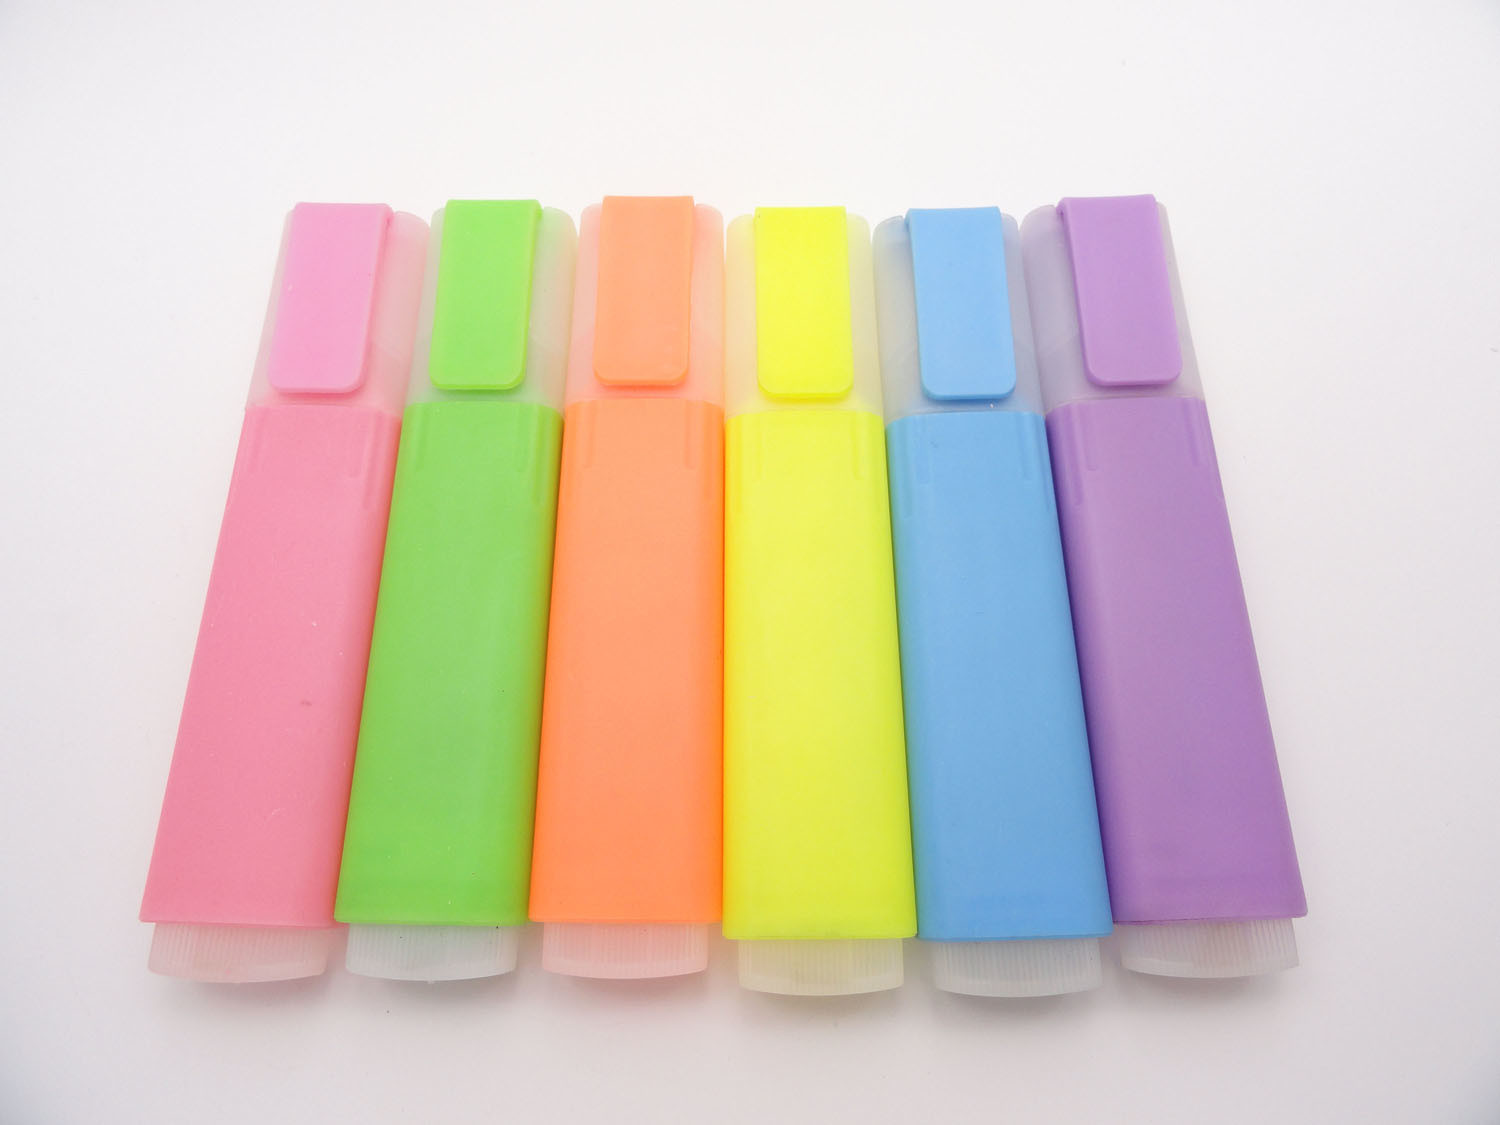 (direct sale) Multi Color Highlighter Ink Refill in High Quality